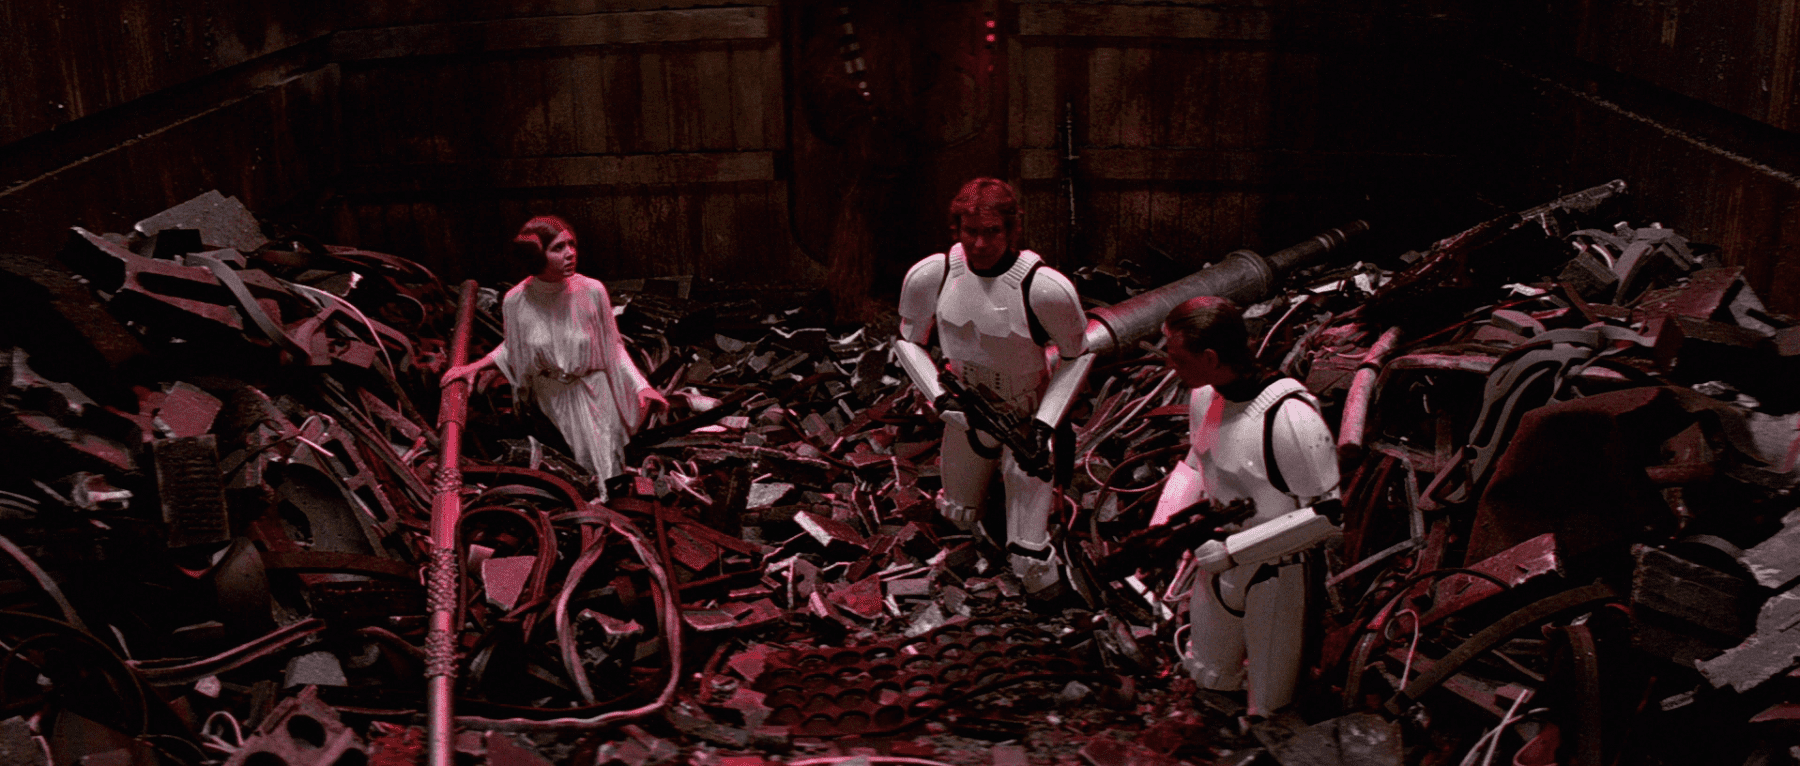 Leia, Luke and Han Solo in the garbage masher